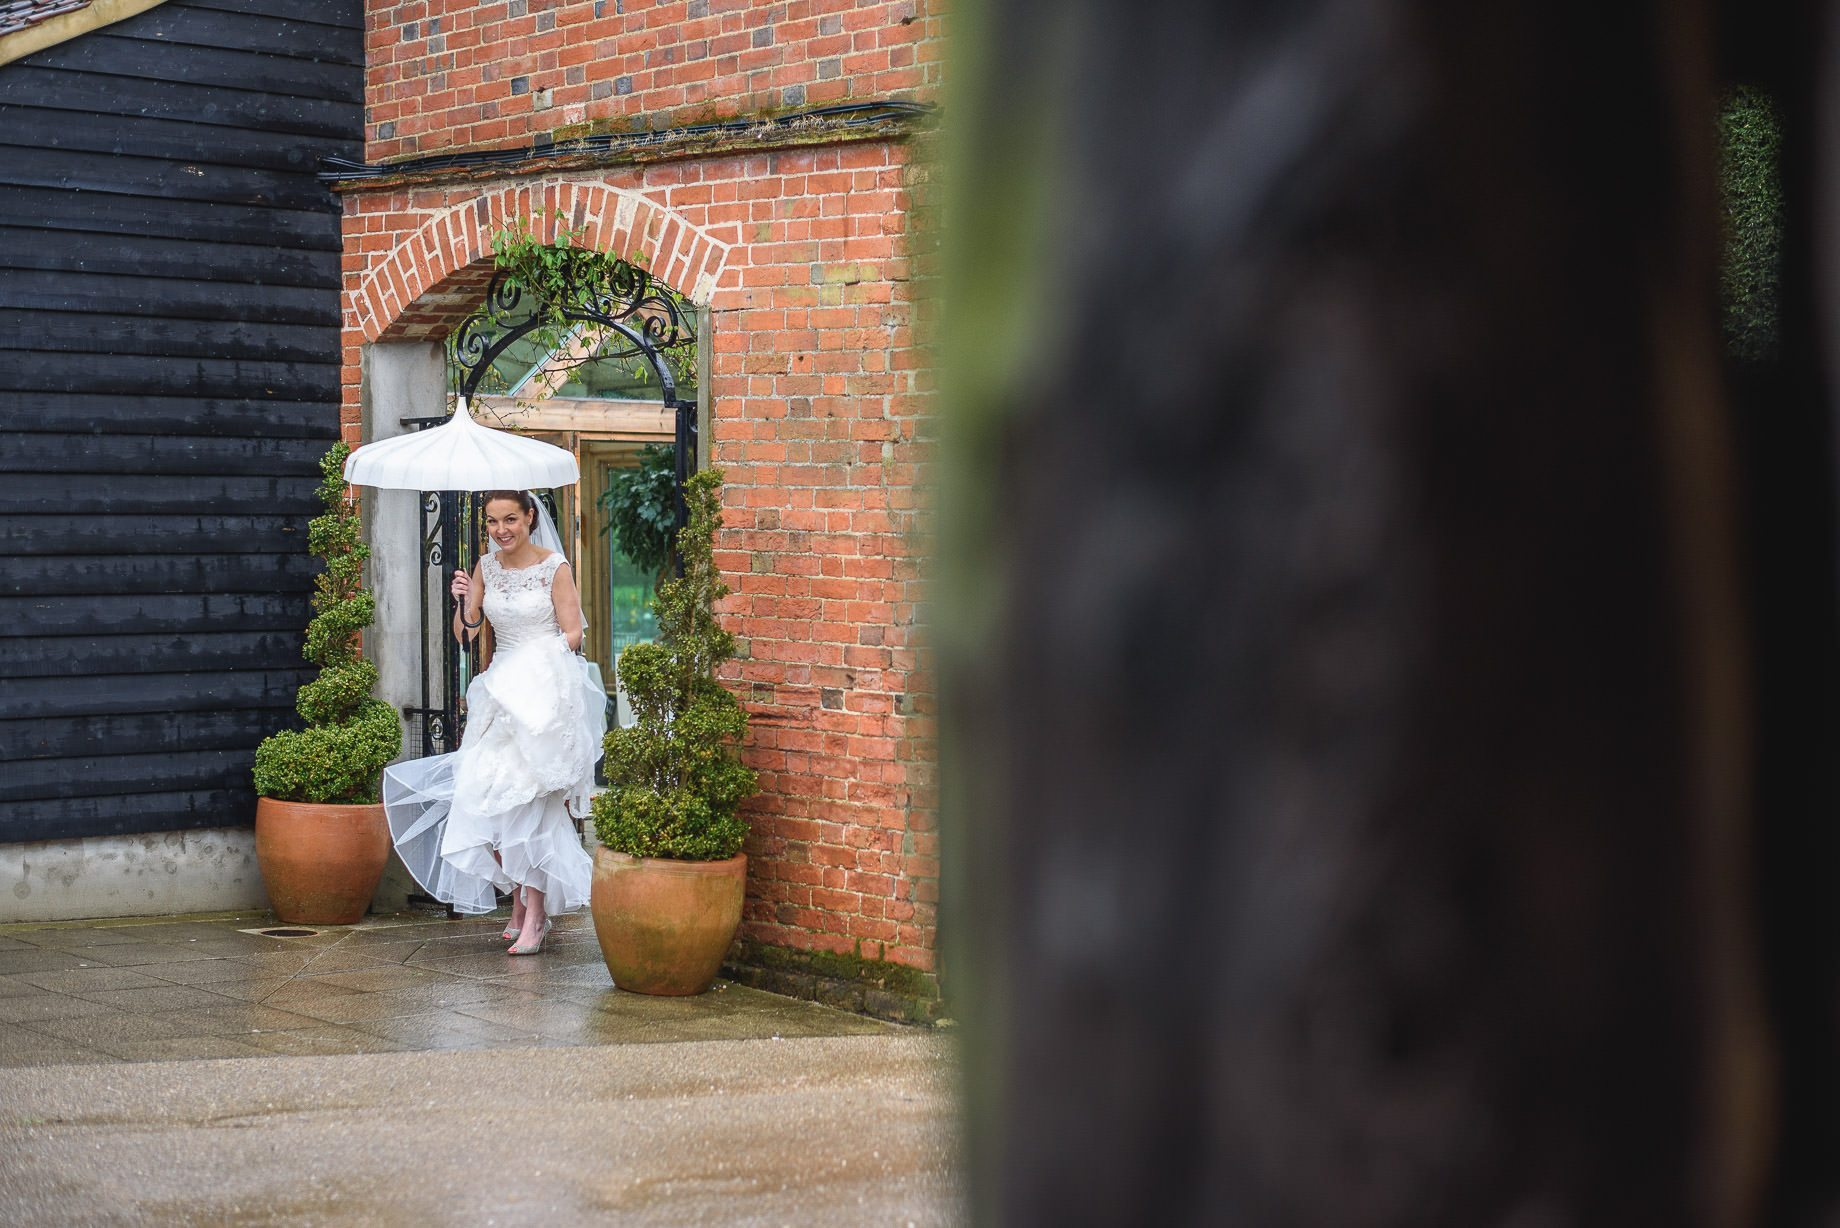 Best wedding photography by Guy Collier - Sheri and Chris (82 of 121)